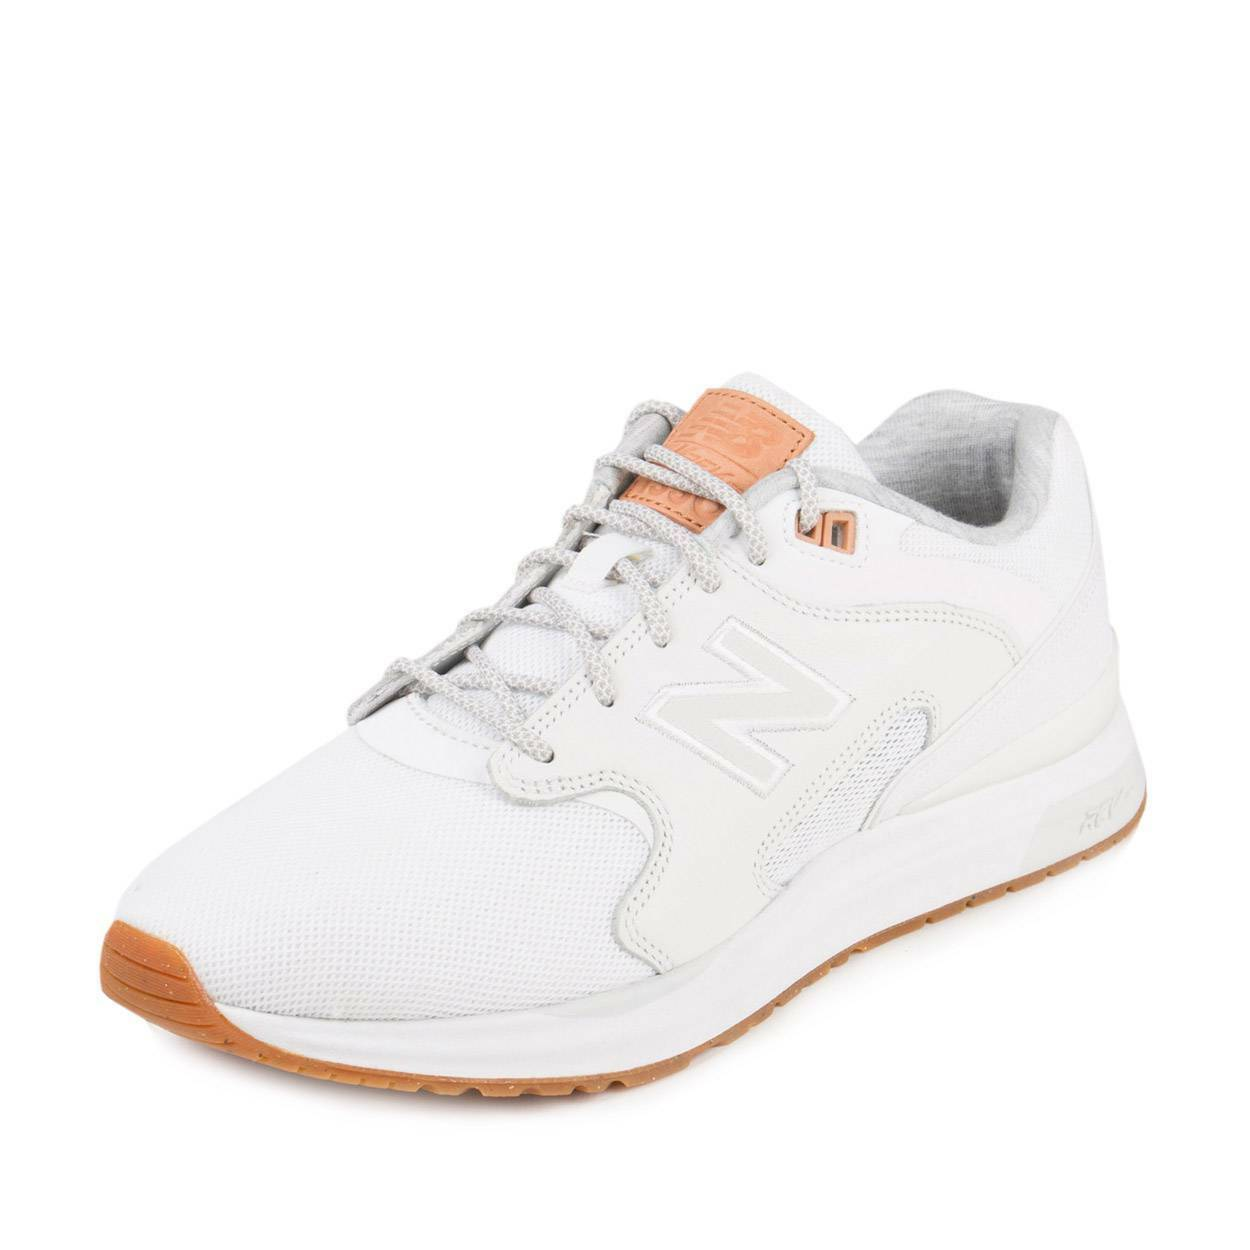 New Balance Mens ML 1550 AD White Gum ML1550AD Size 8.5